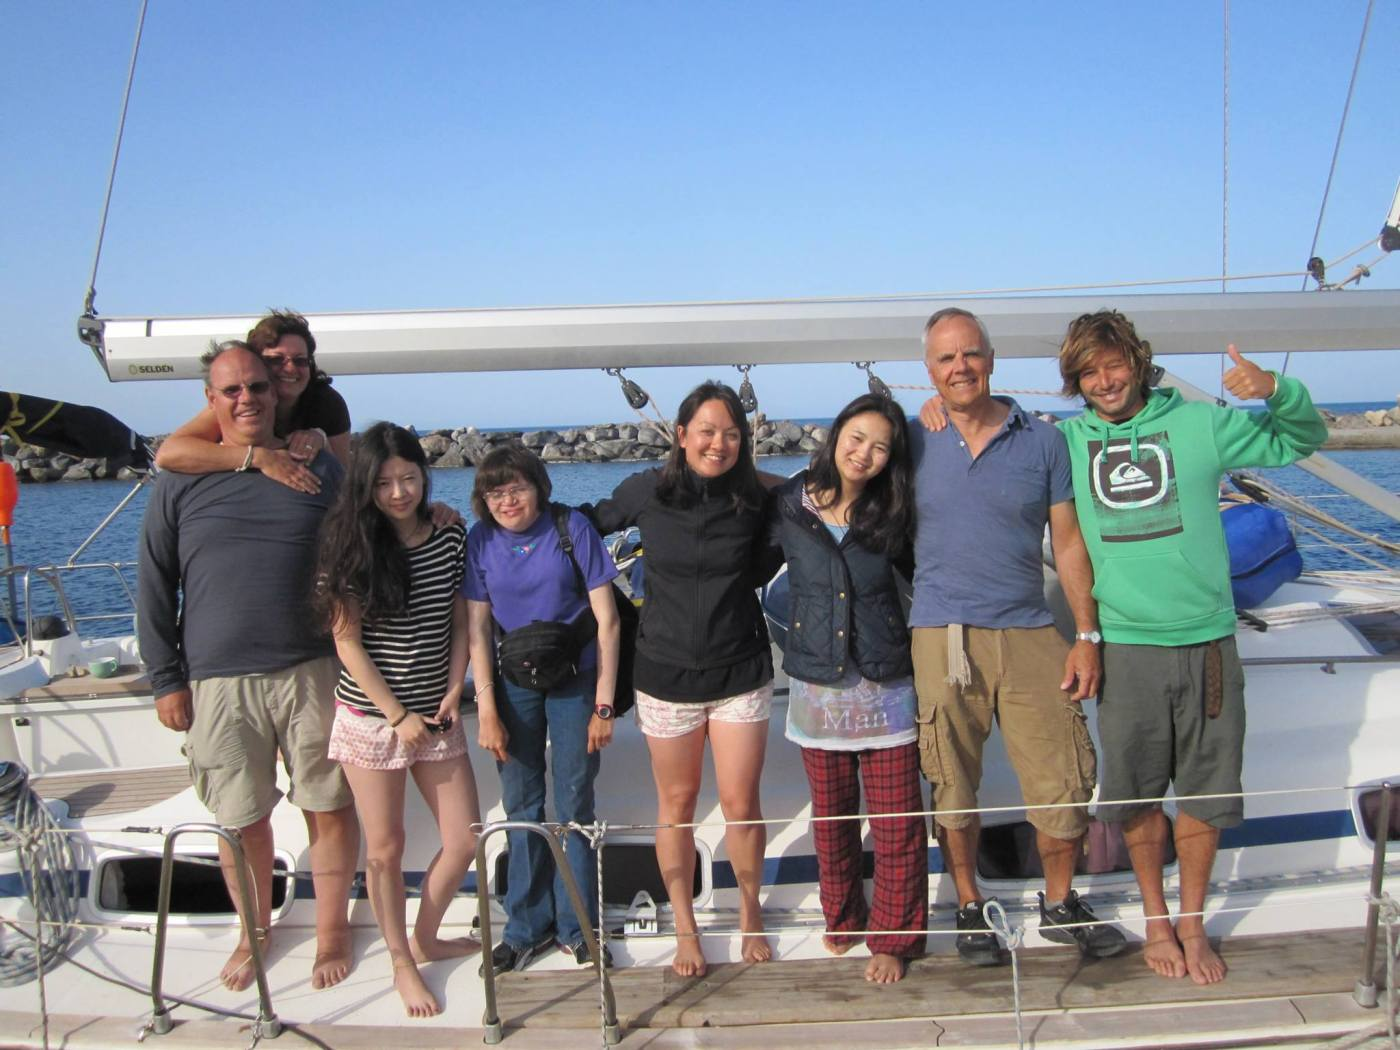 The crew of the Greece sailing adventure: Karel, Denise, Tina, Andrea, Row, Xin, Paul, and skipper Andre.